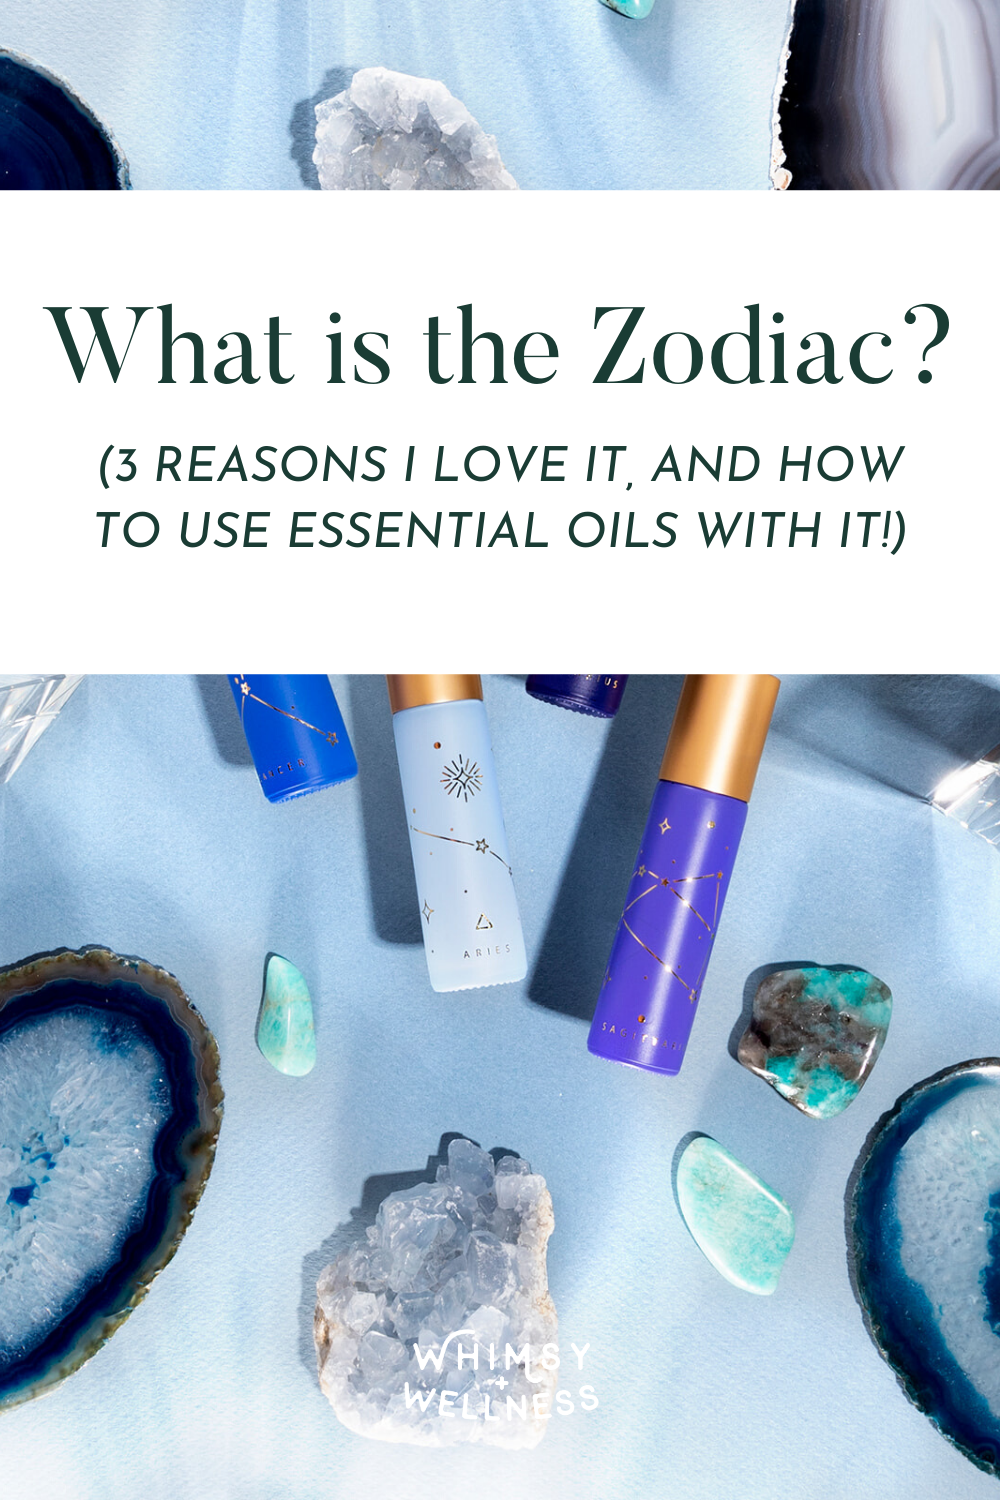 what is the zodiac? 5 reasons to love it and use essential oils with your sign